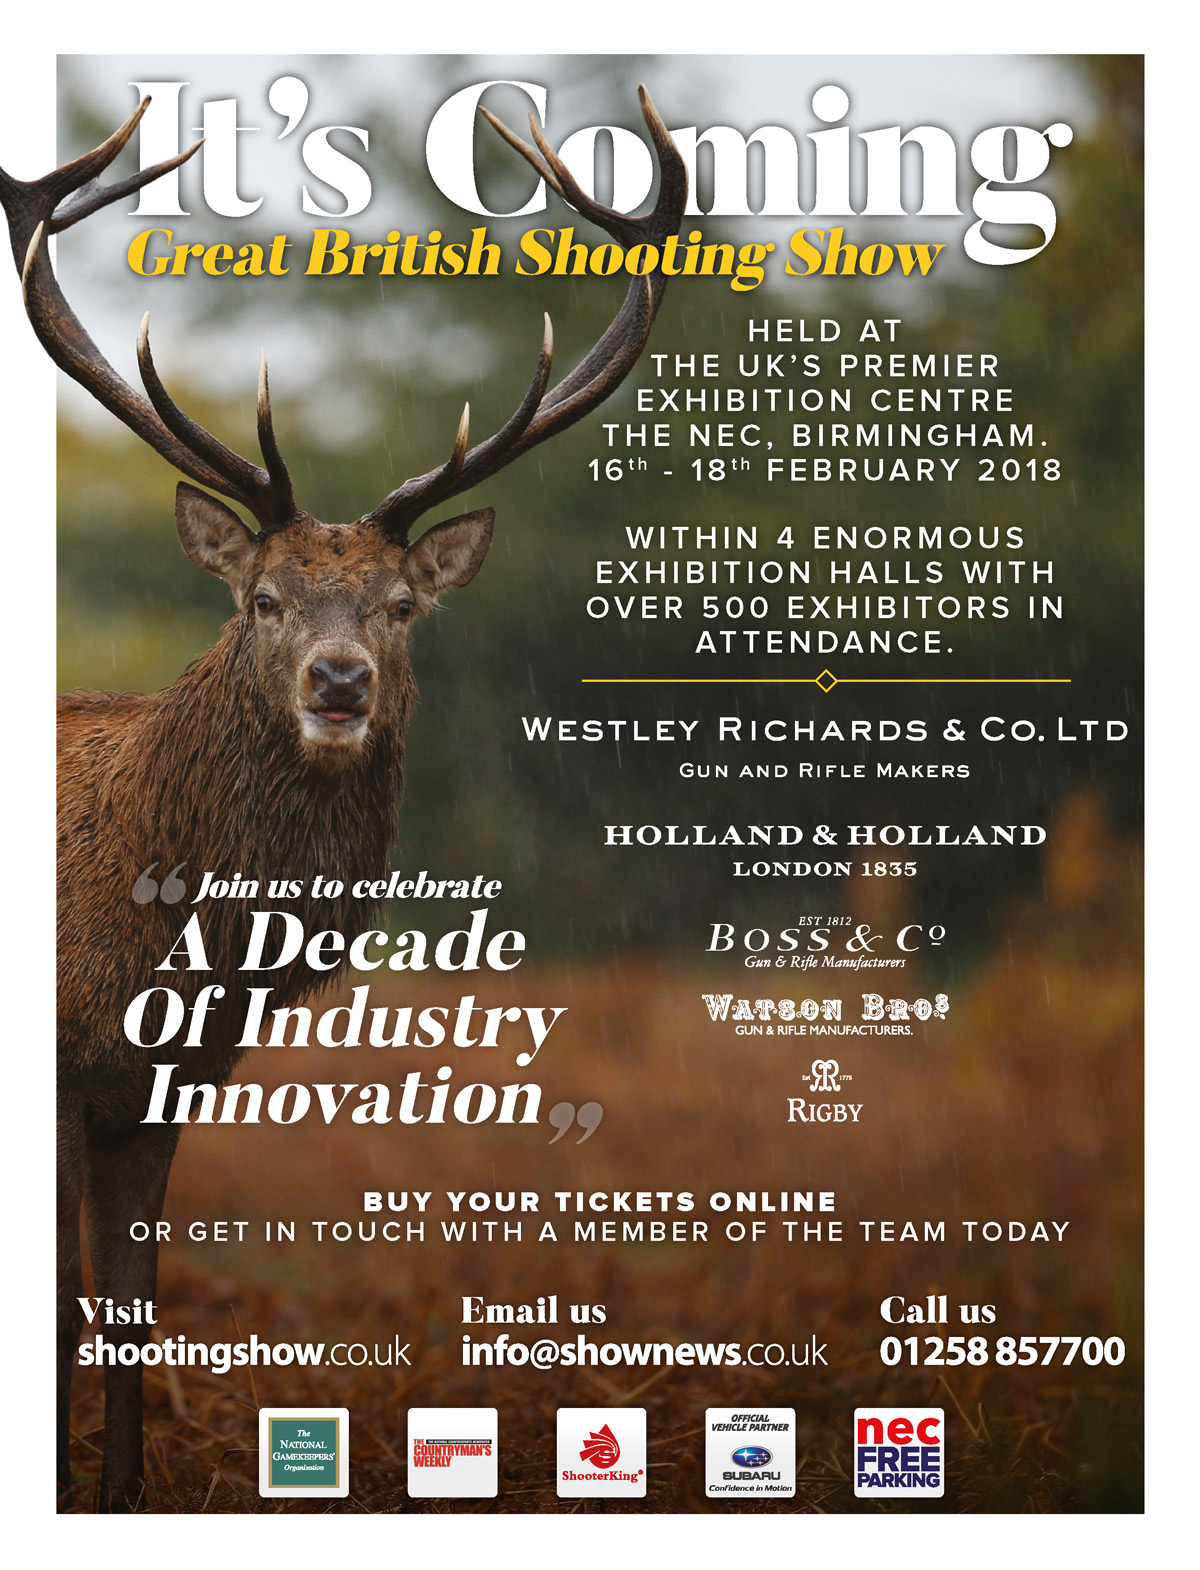 British Shooting Show '10th Anniversary' February 2018